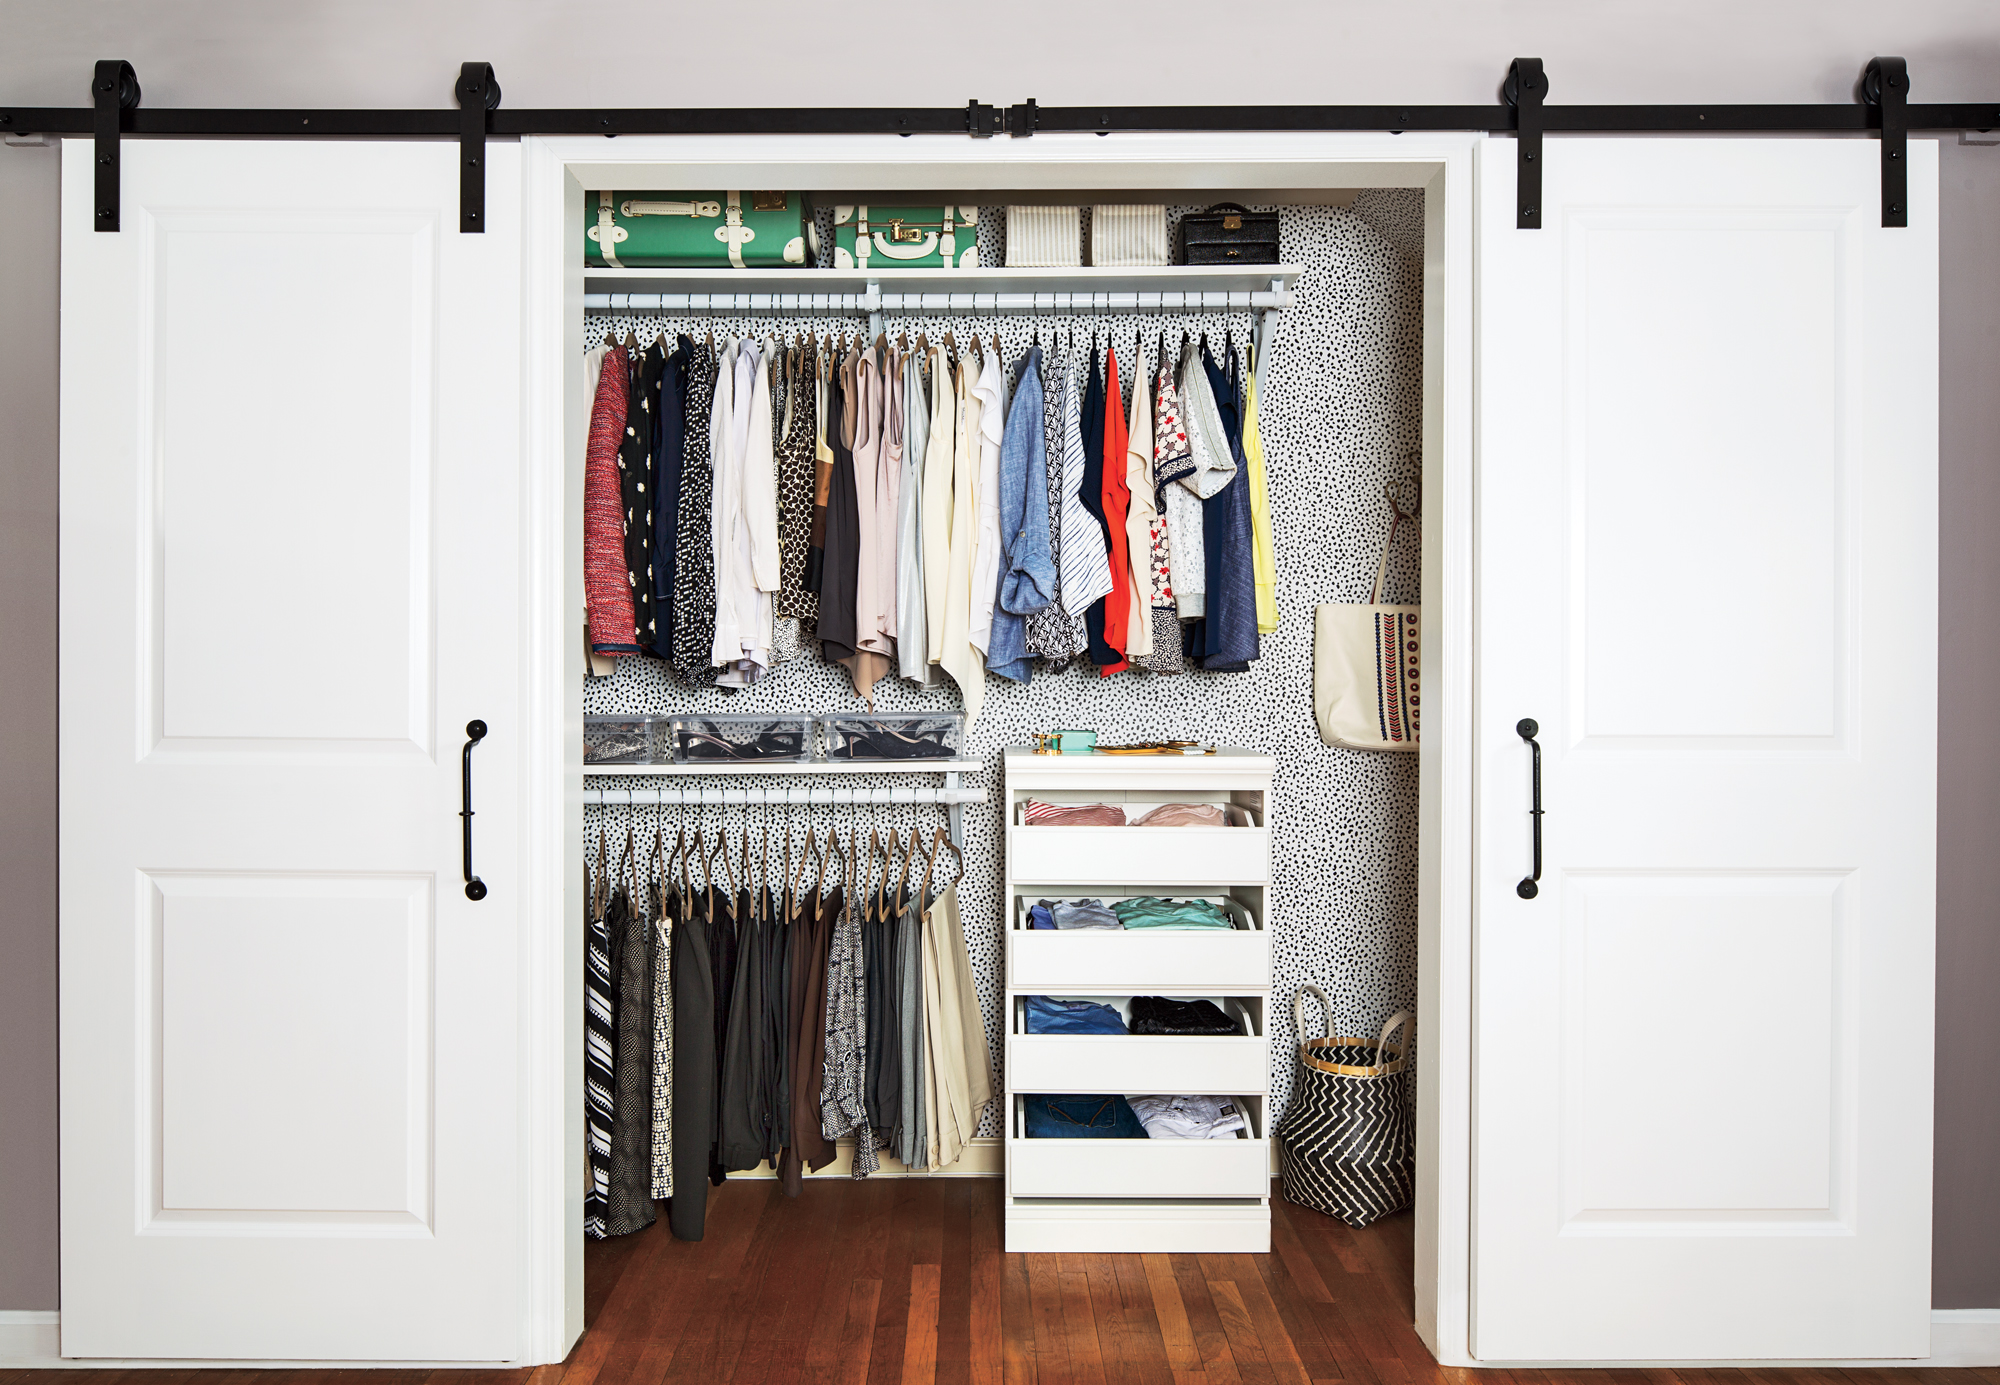 Organized closet with barn doors